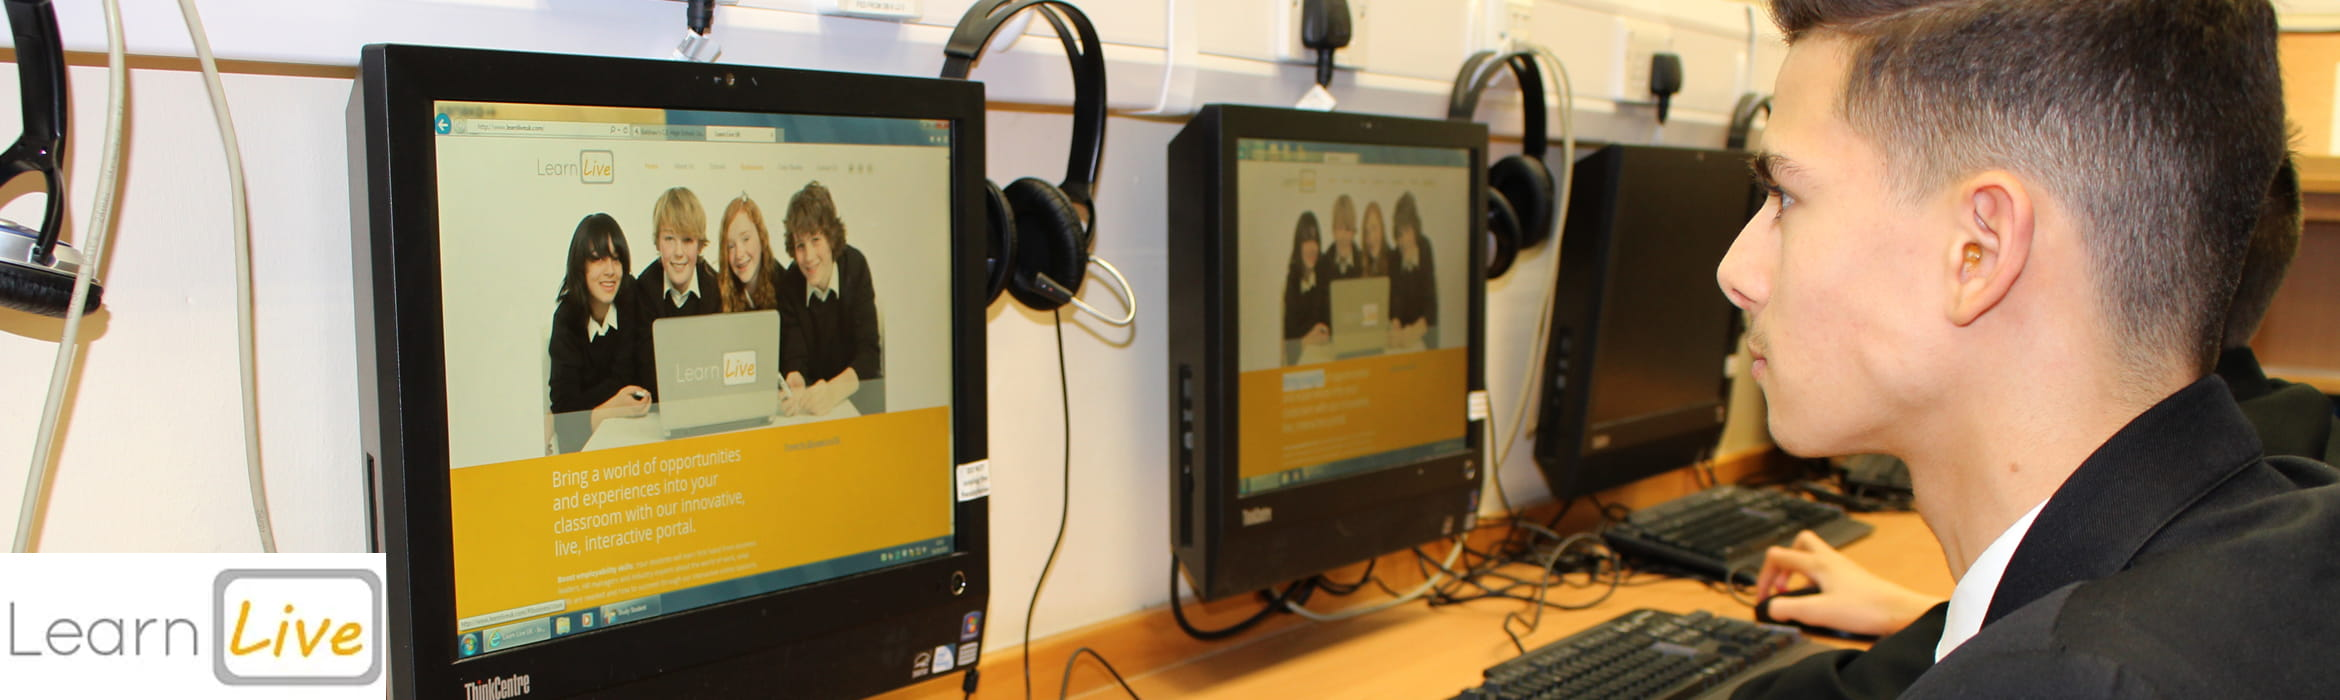 School child using OmniJoin web conferencing in a classroom